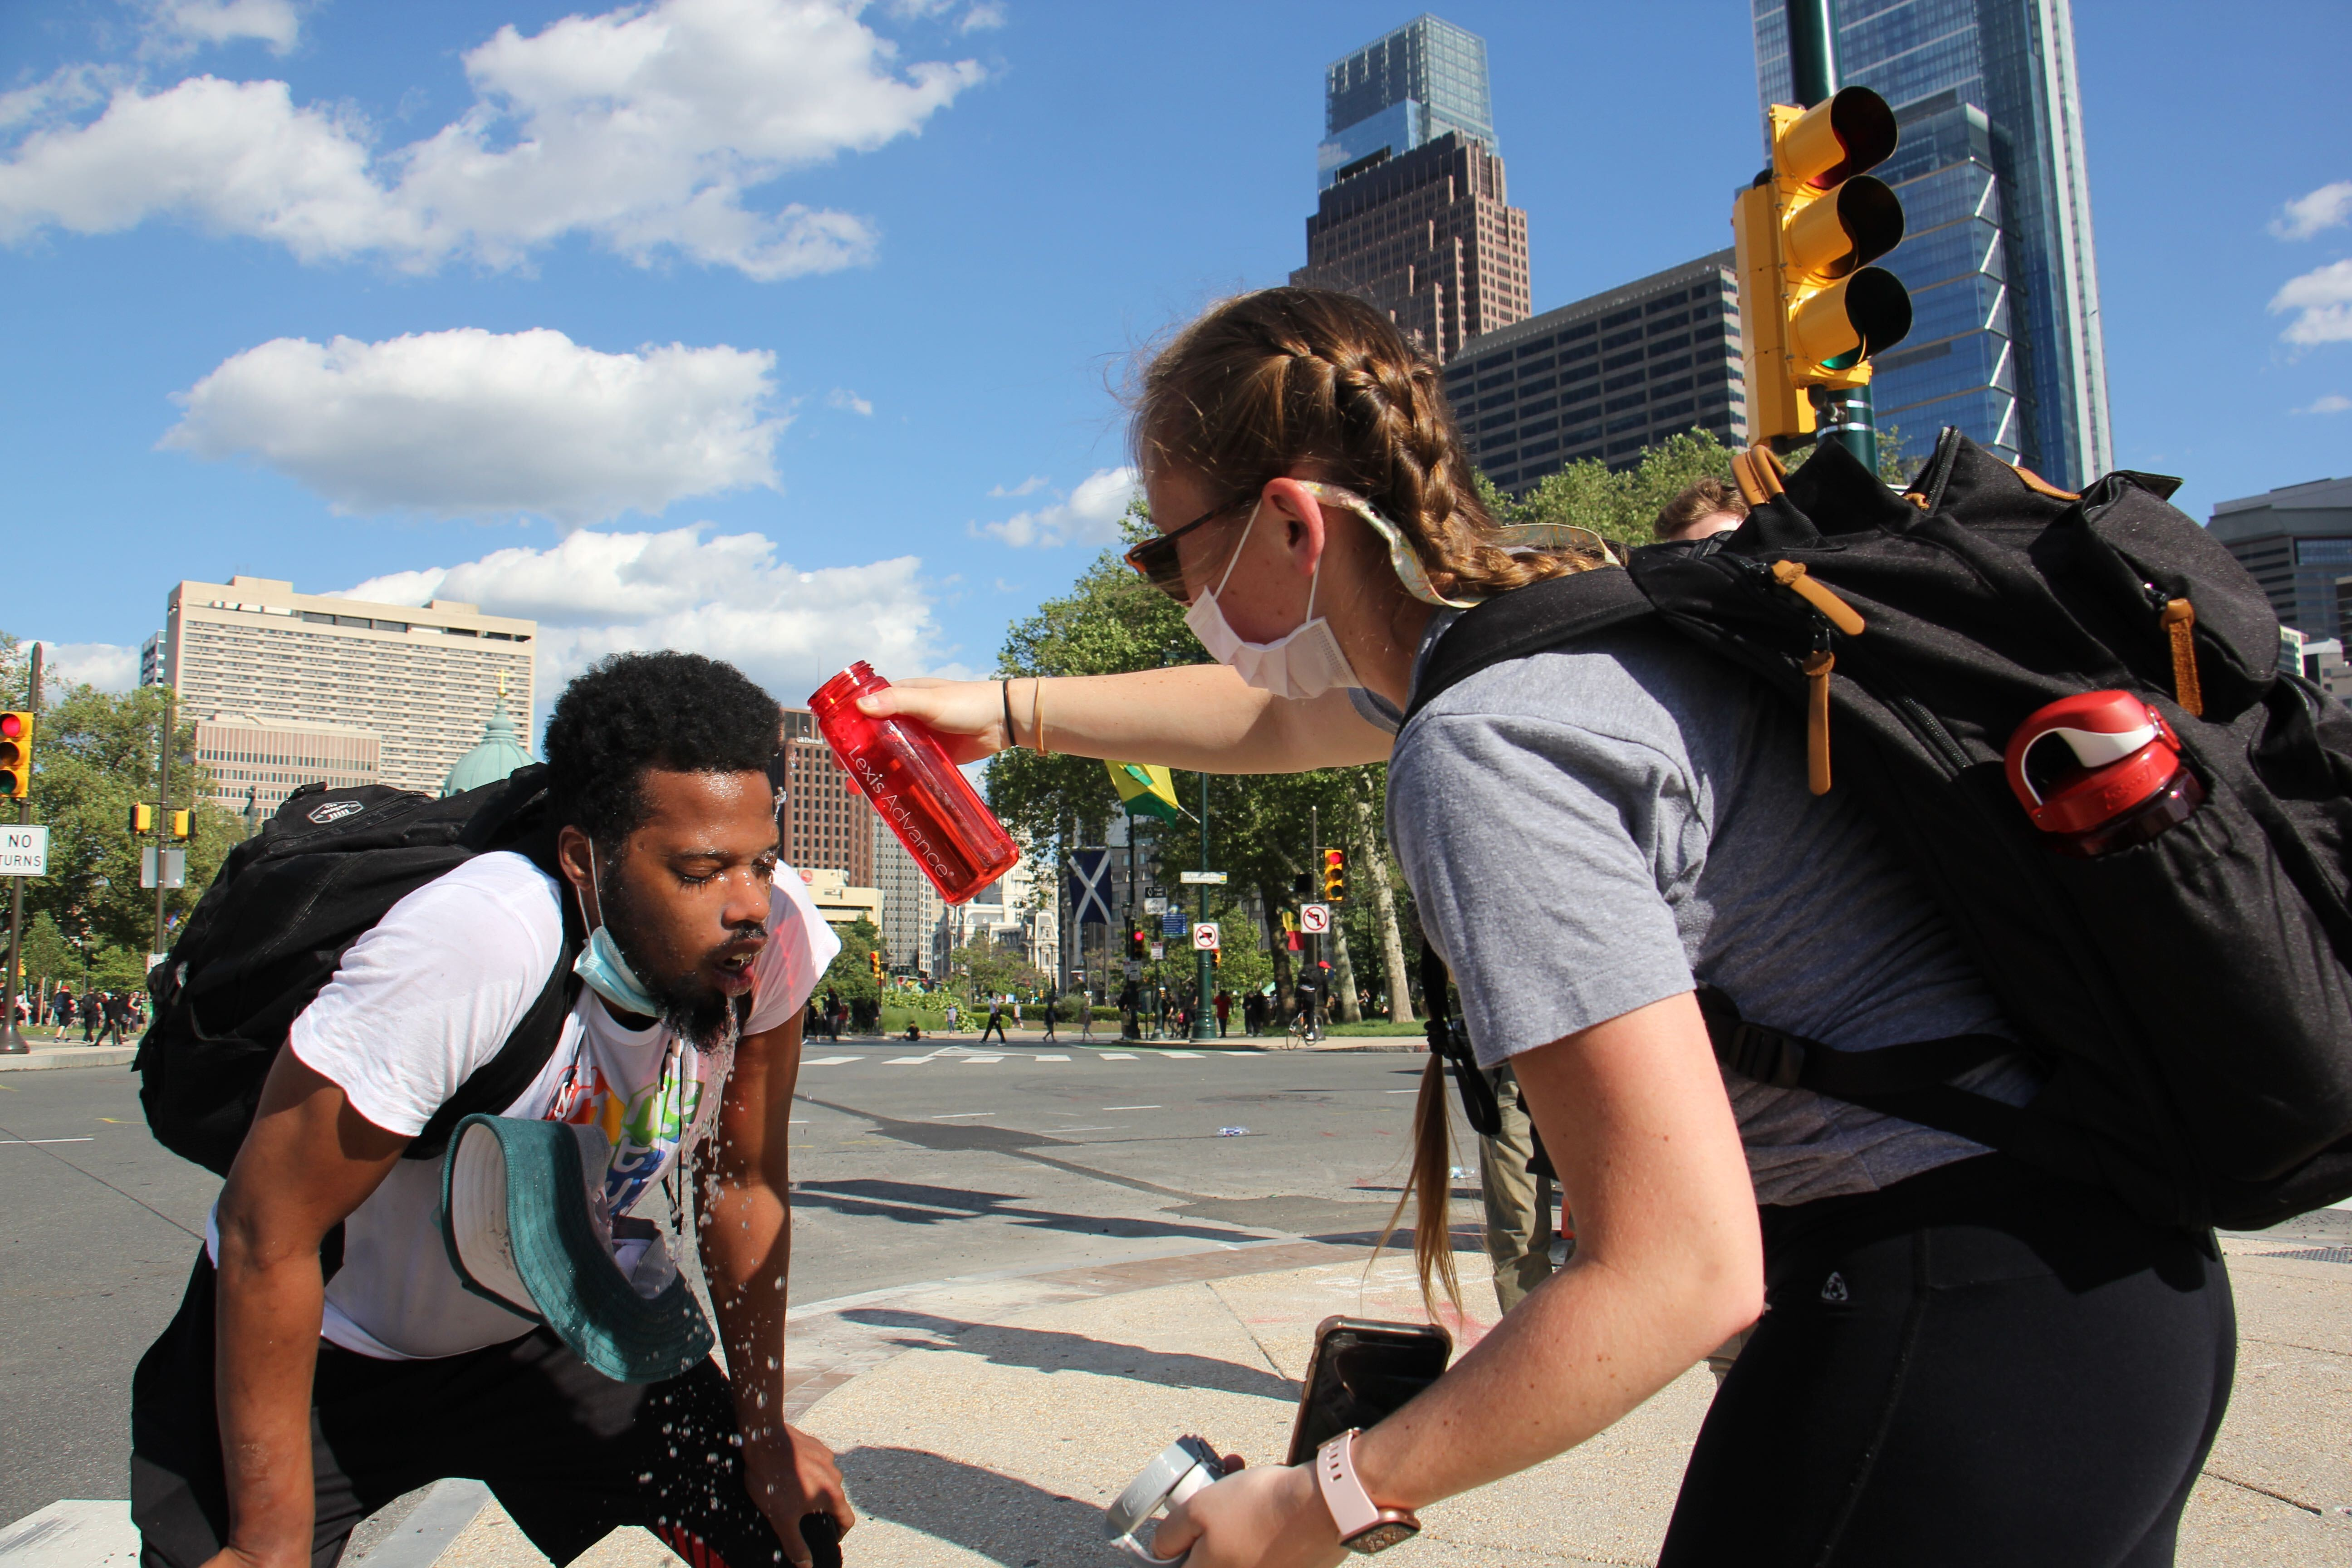 Protesters help each other after being tear-gassed on the Ben Franklin Parkway